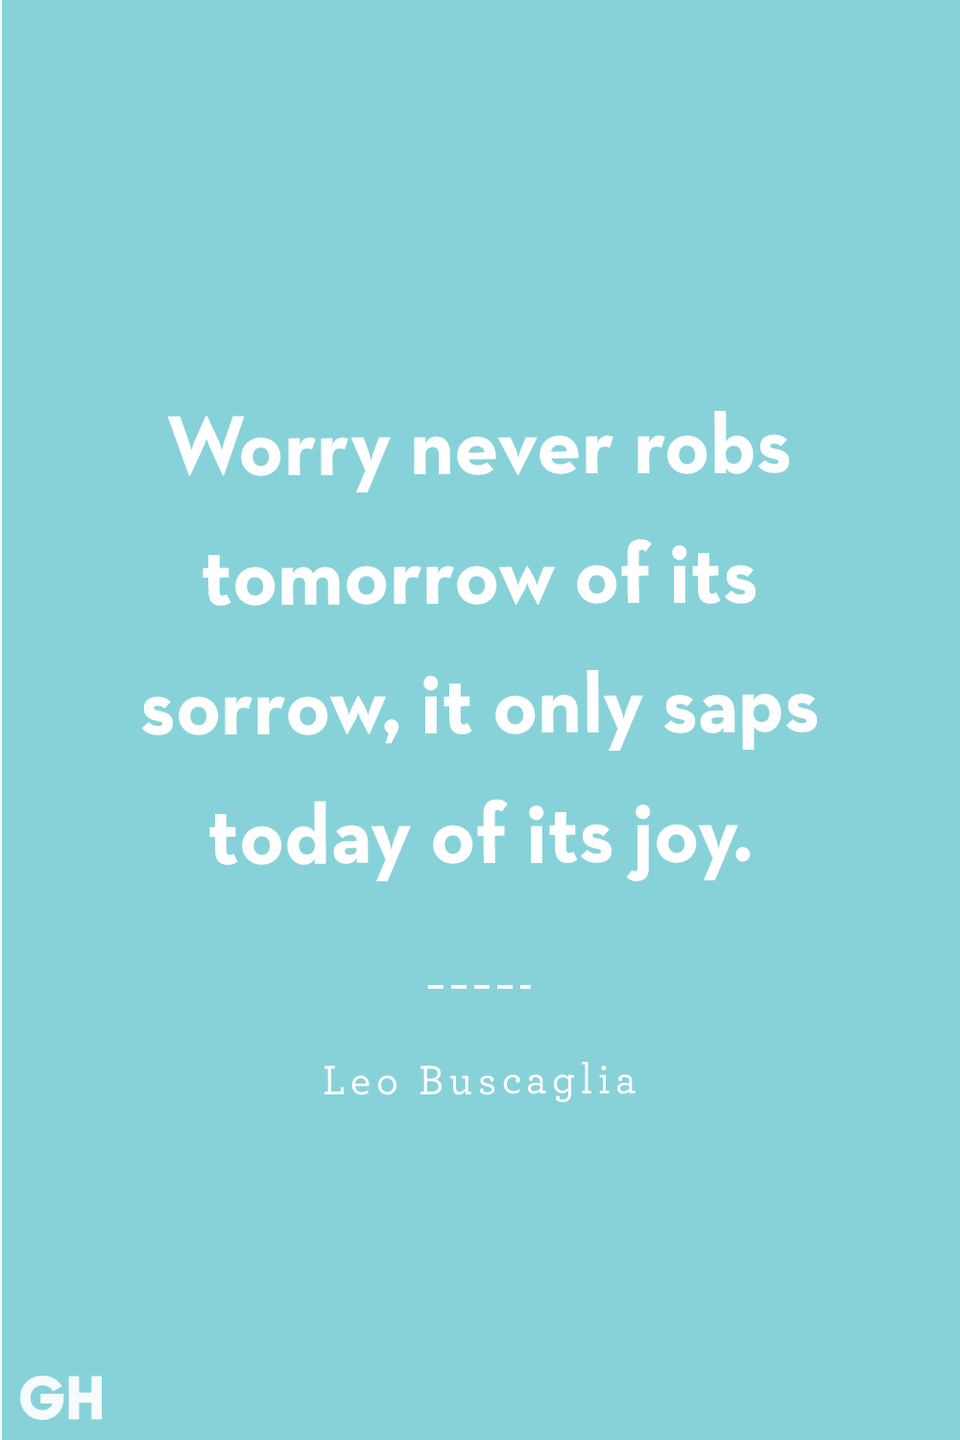 <p>Worry never robs tomorrow of its sorrow, it only saps today of its joy.</p>